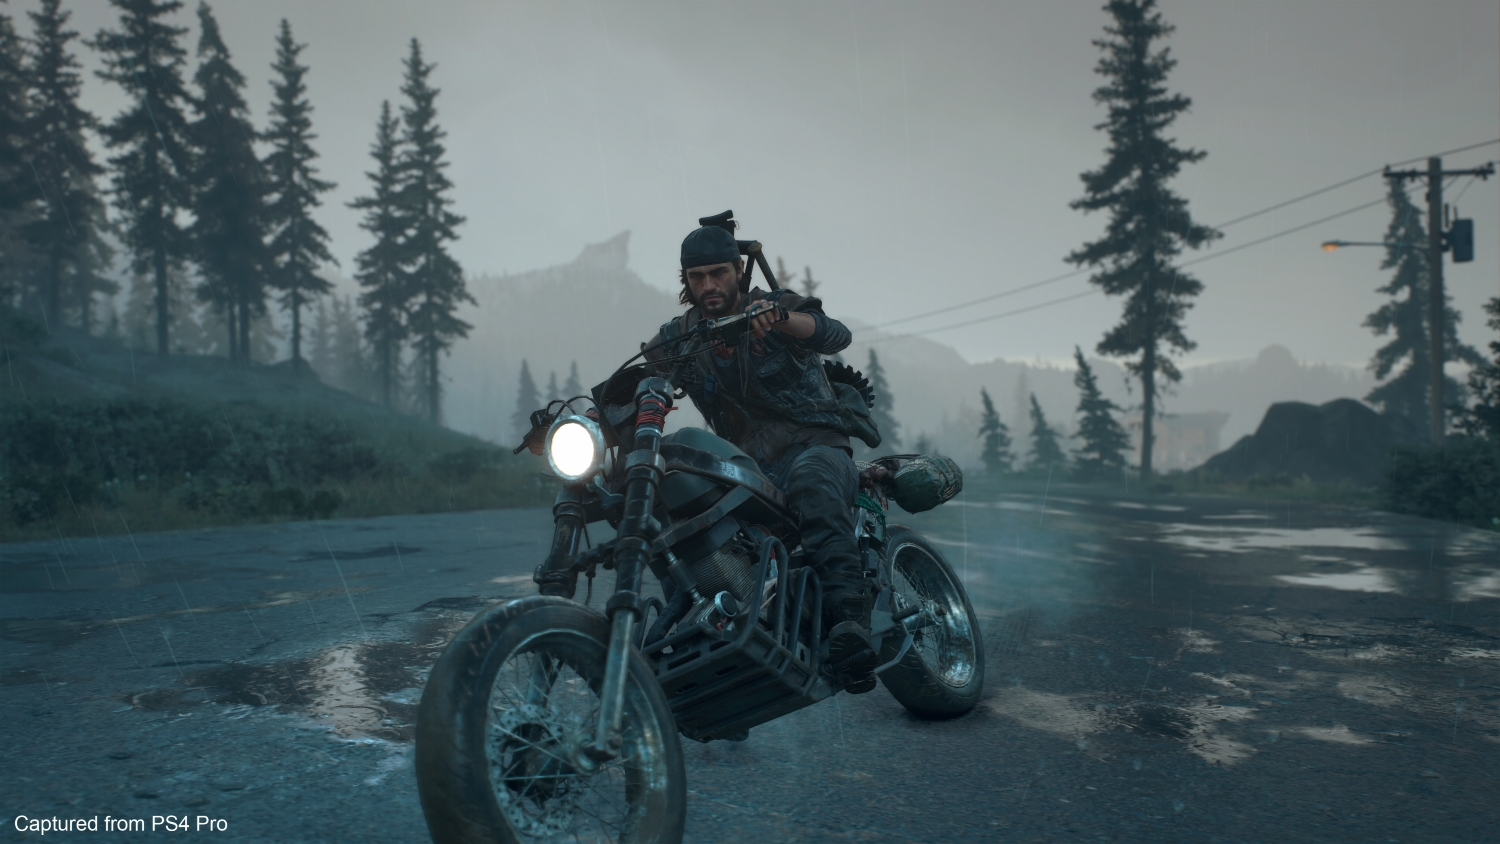 Games Inbox: Days Gone DLC ideas, Ghost Recon: Breakpoint reaction, and Detective Pikachu questions